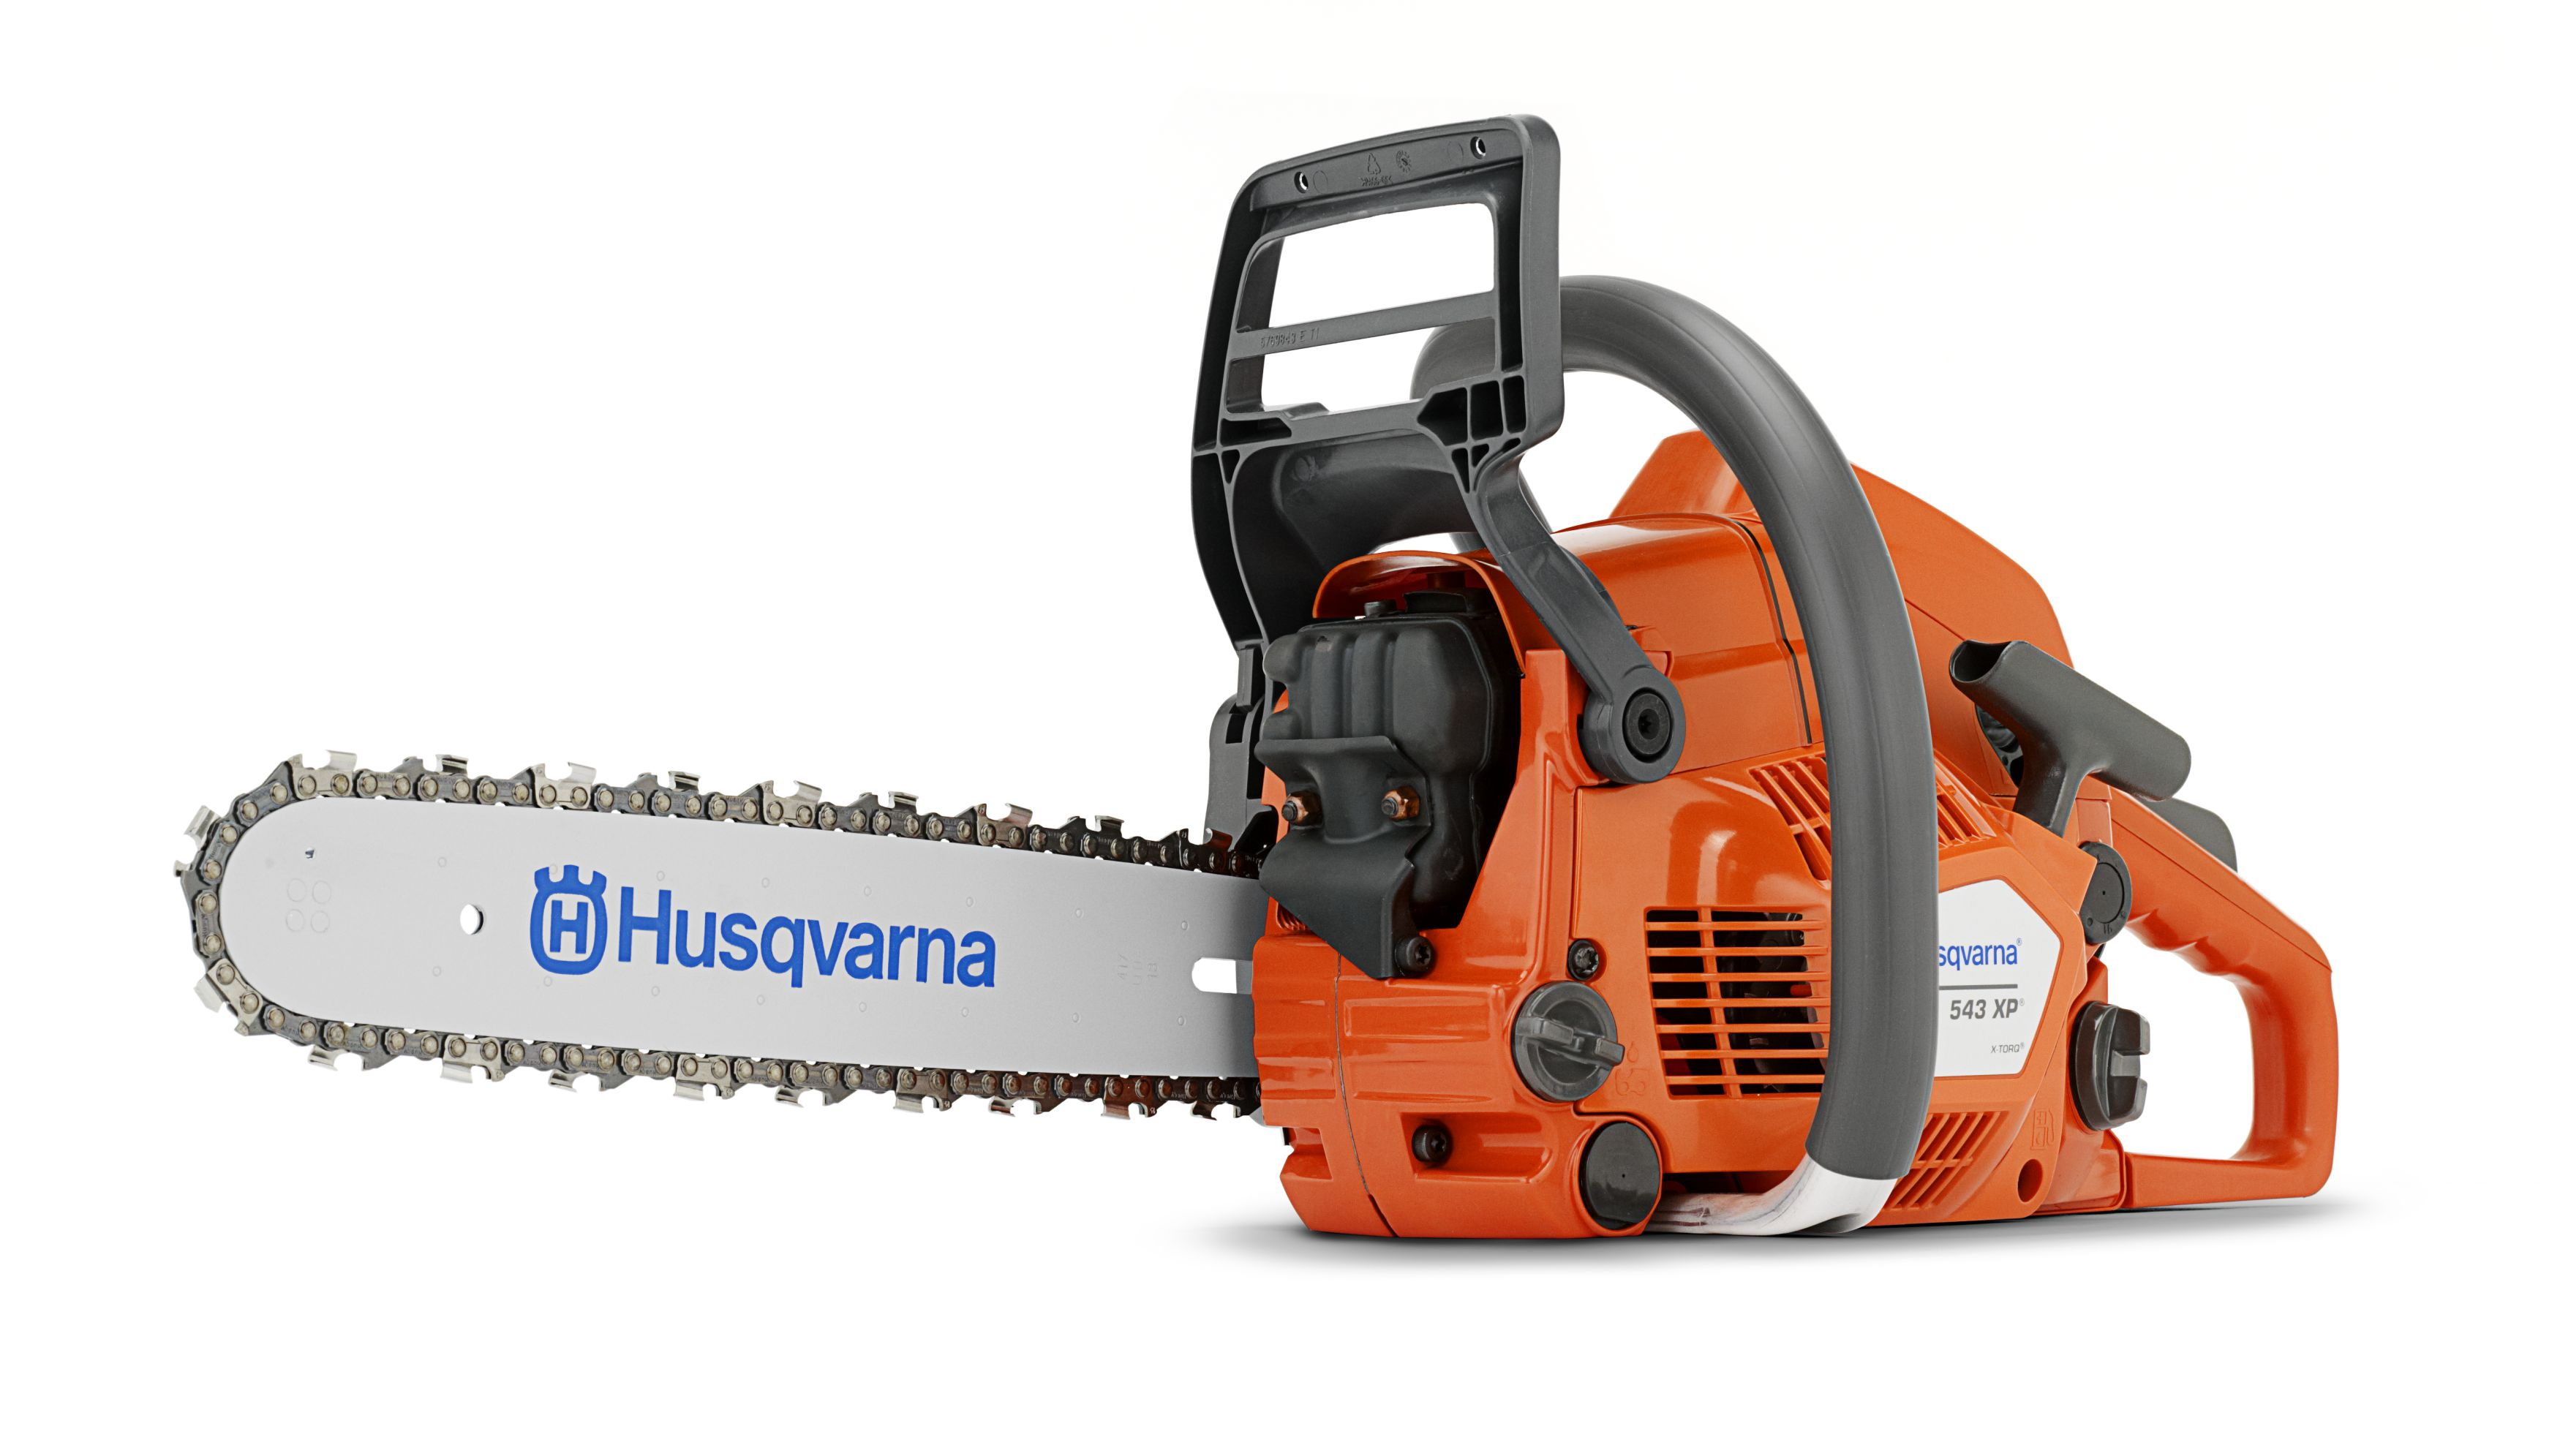 husqvarna 543xp chainsaw proudfoot motors. Black Bedroom Furniture Sets. Home Design Ideas